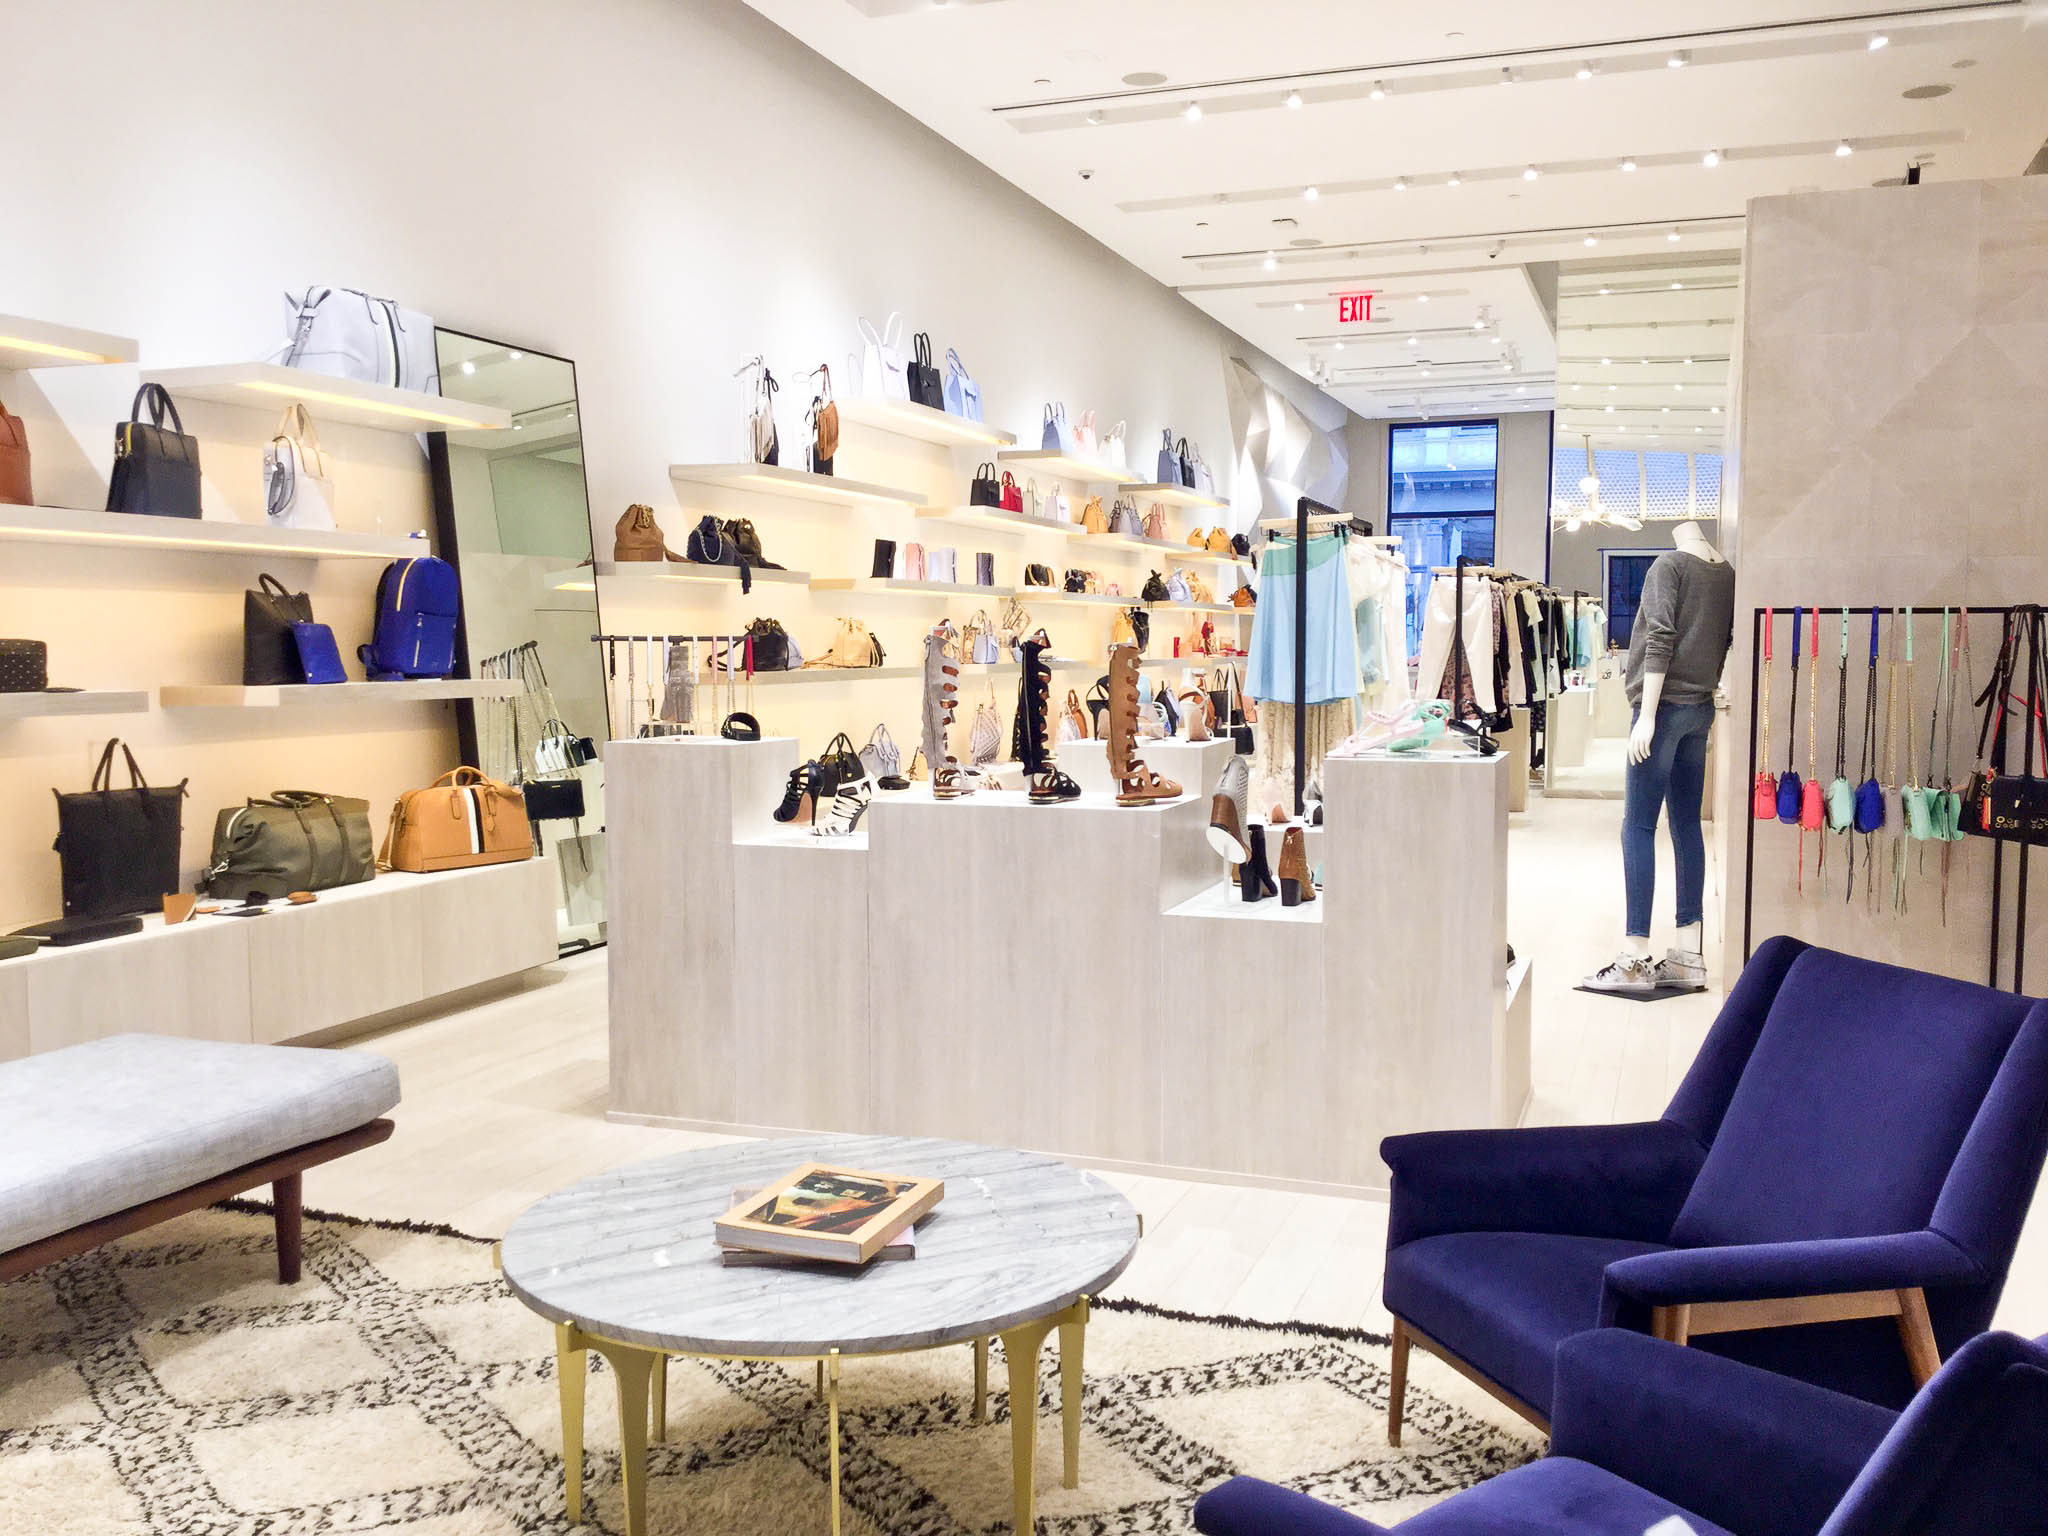 The Rebecca Minkoff flagship retail store in Soho ready for the grand opening